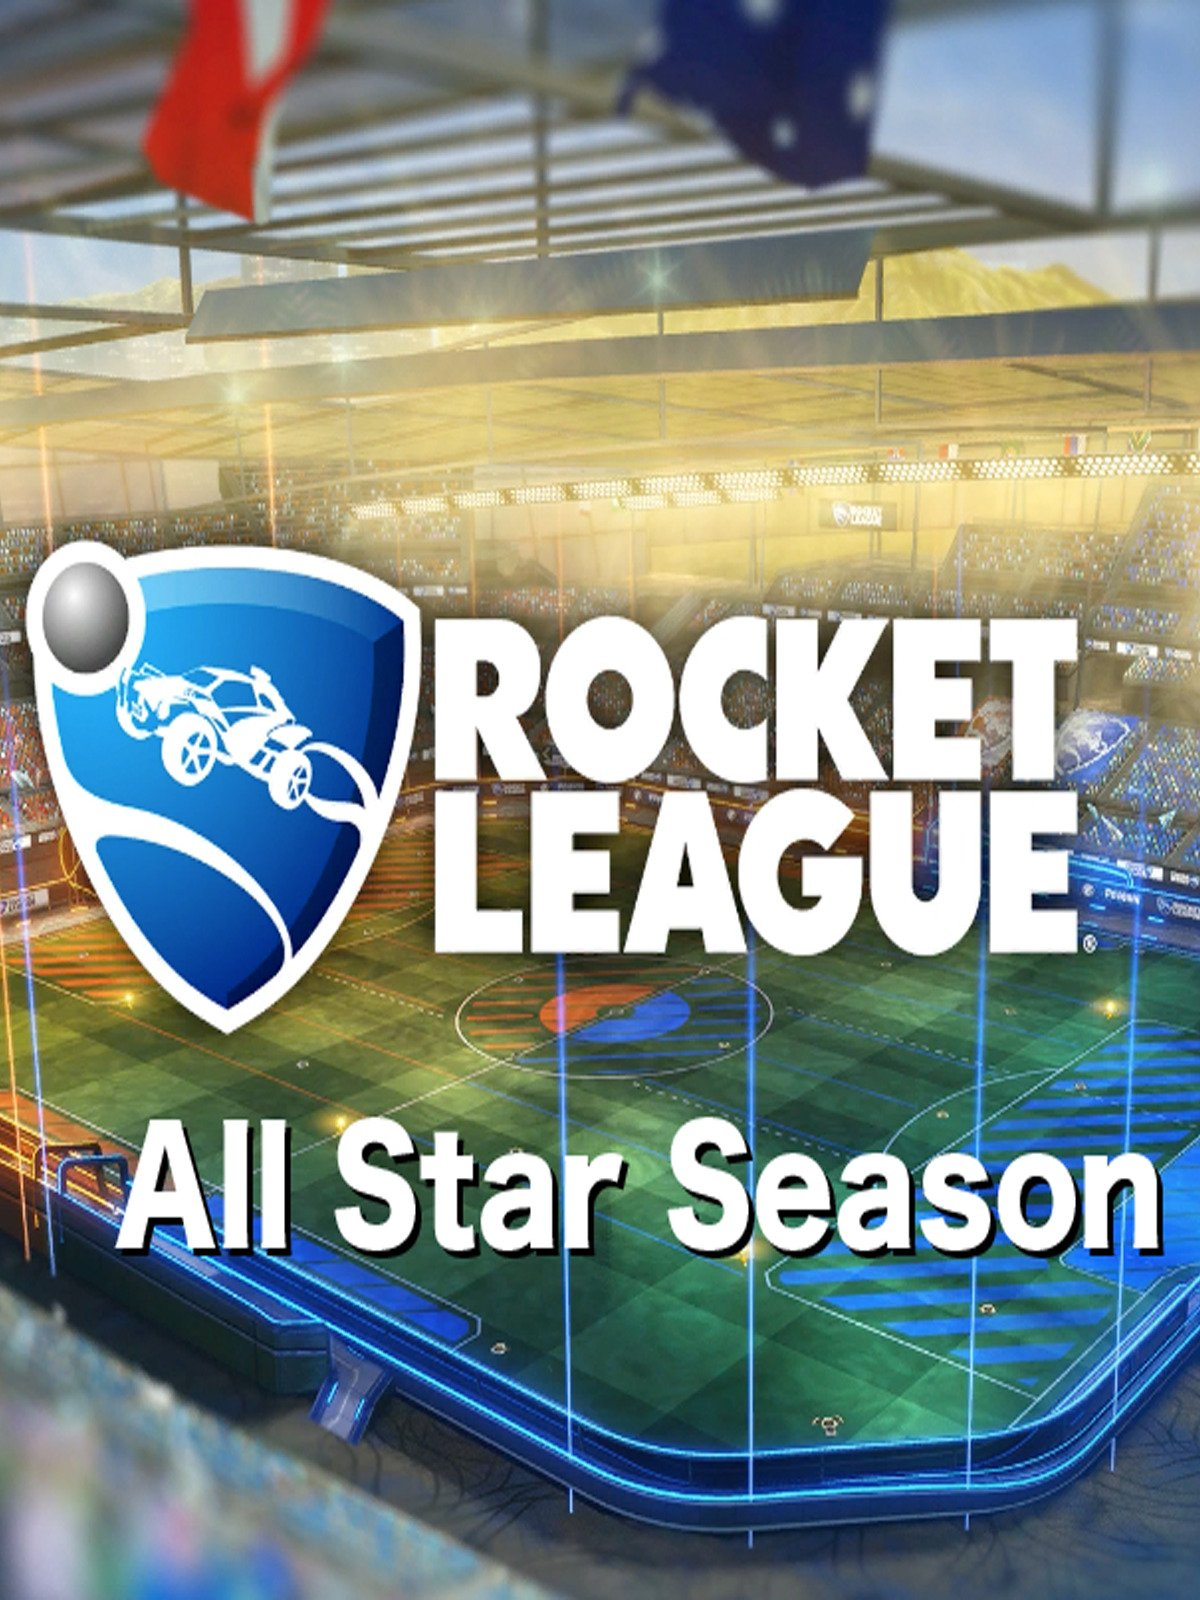 Clip: Rocket League All Star Season